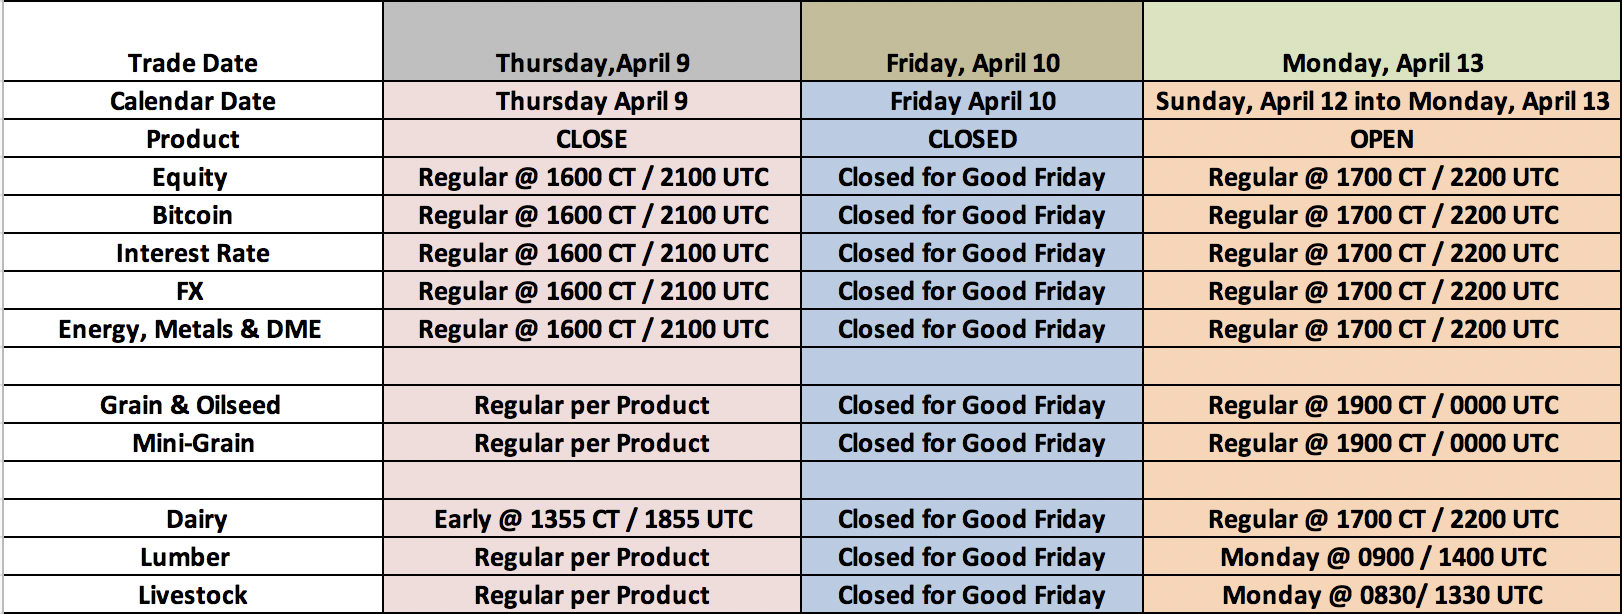 CME Group Globex Good Friday Holiday Schedule - April 9,2020 to April 13, 2020